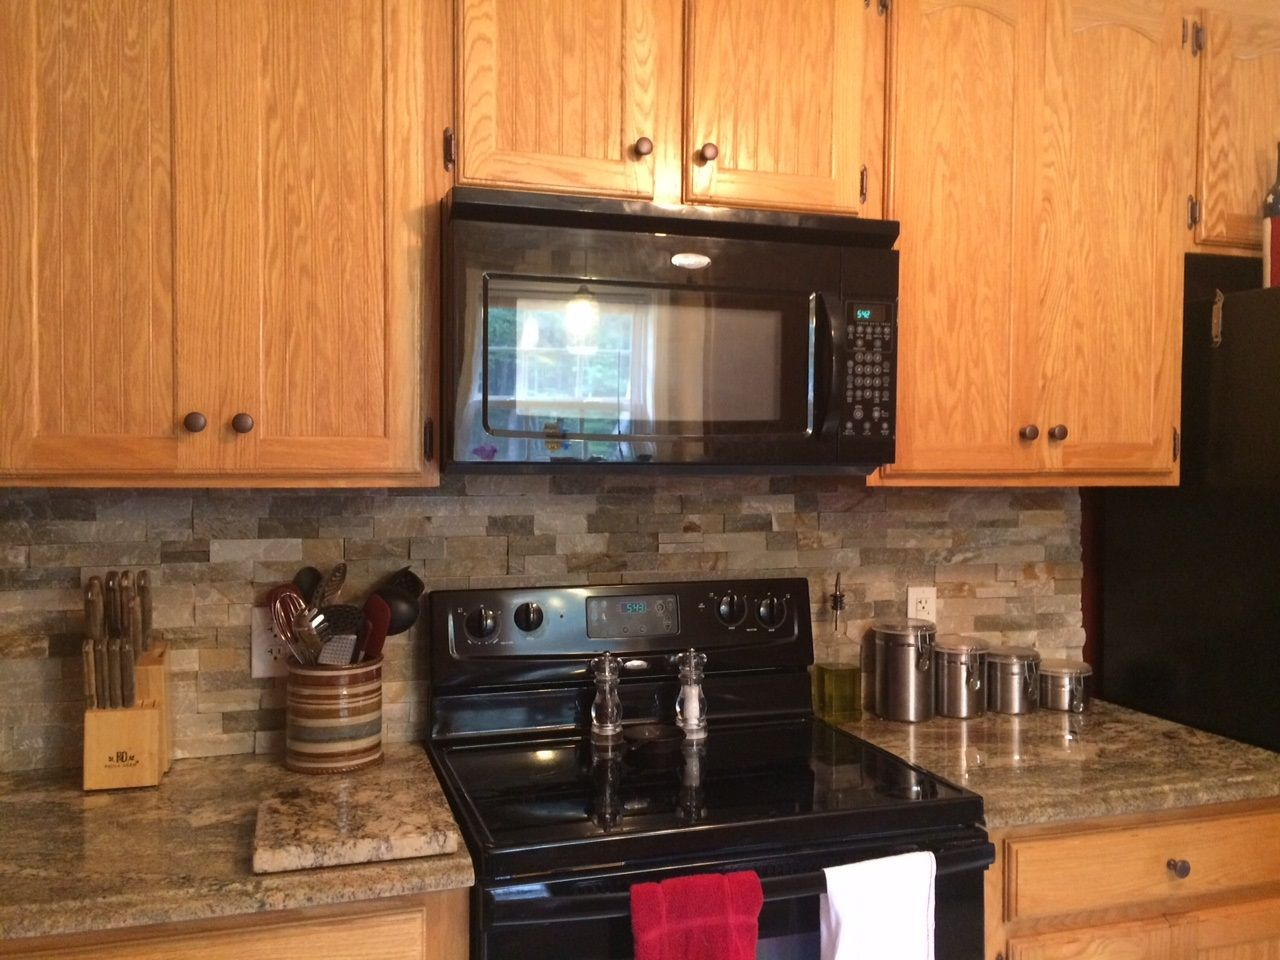 Oak Cabinets With Granite Countertops Pictures River Bordeaux Granite Countertops And Desert Sand Stone